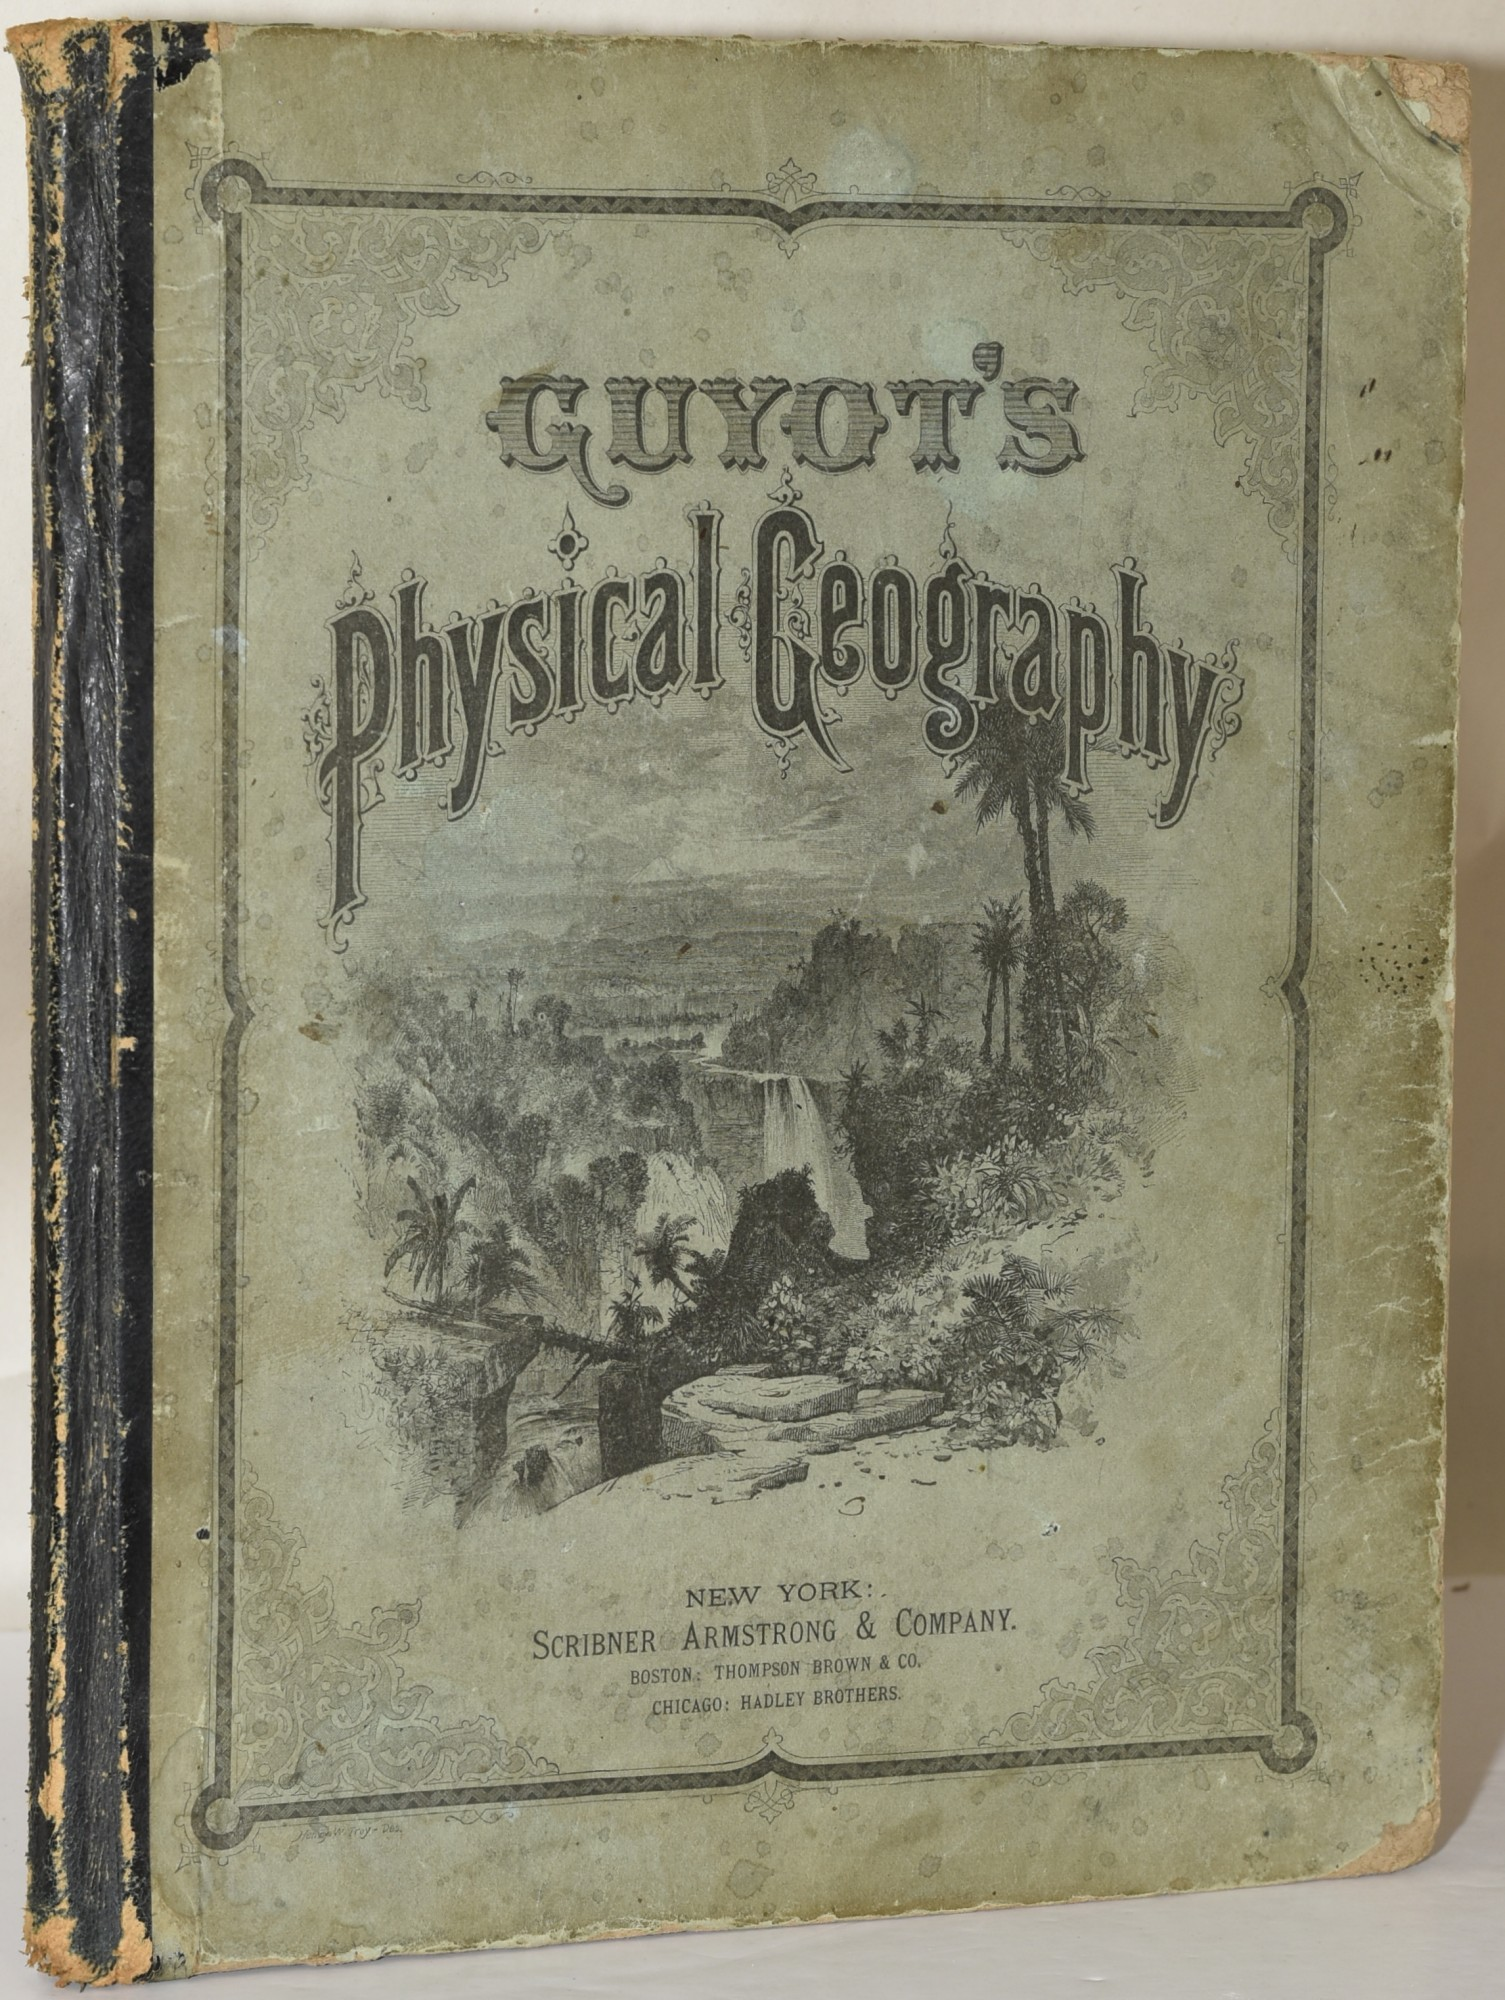 GUYOT'S GEOGRAPHICAL SERIES. PHYSICAL GEOGRAPHY | Arnold Guyot